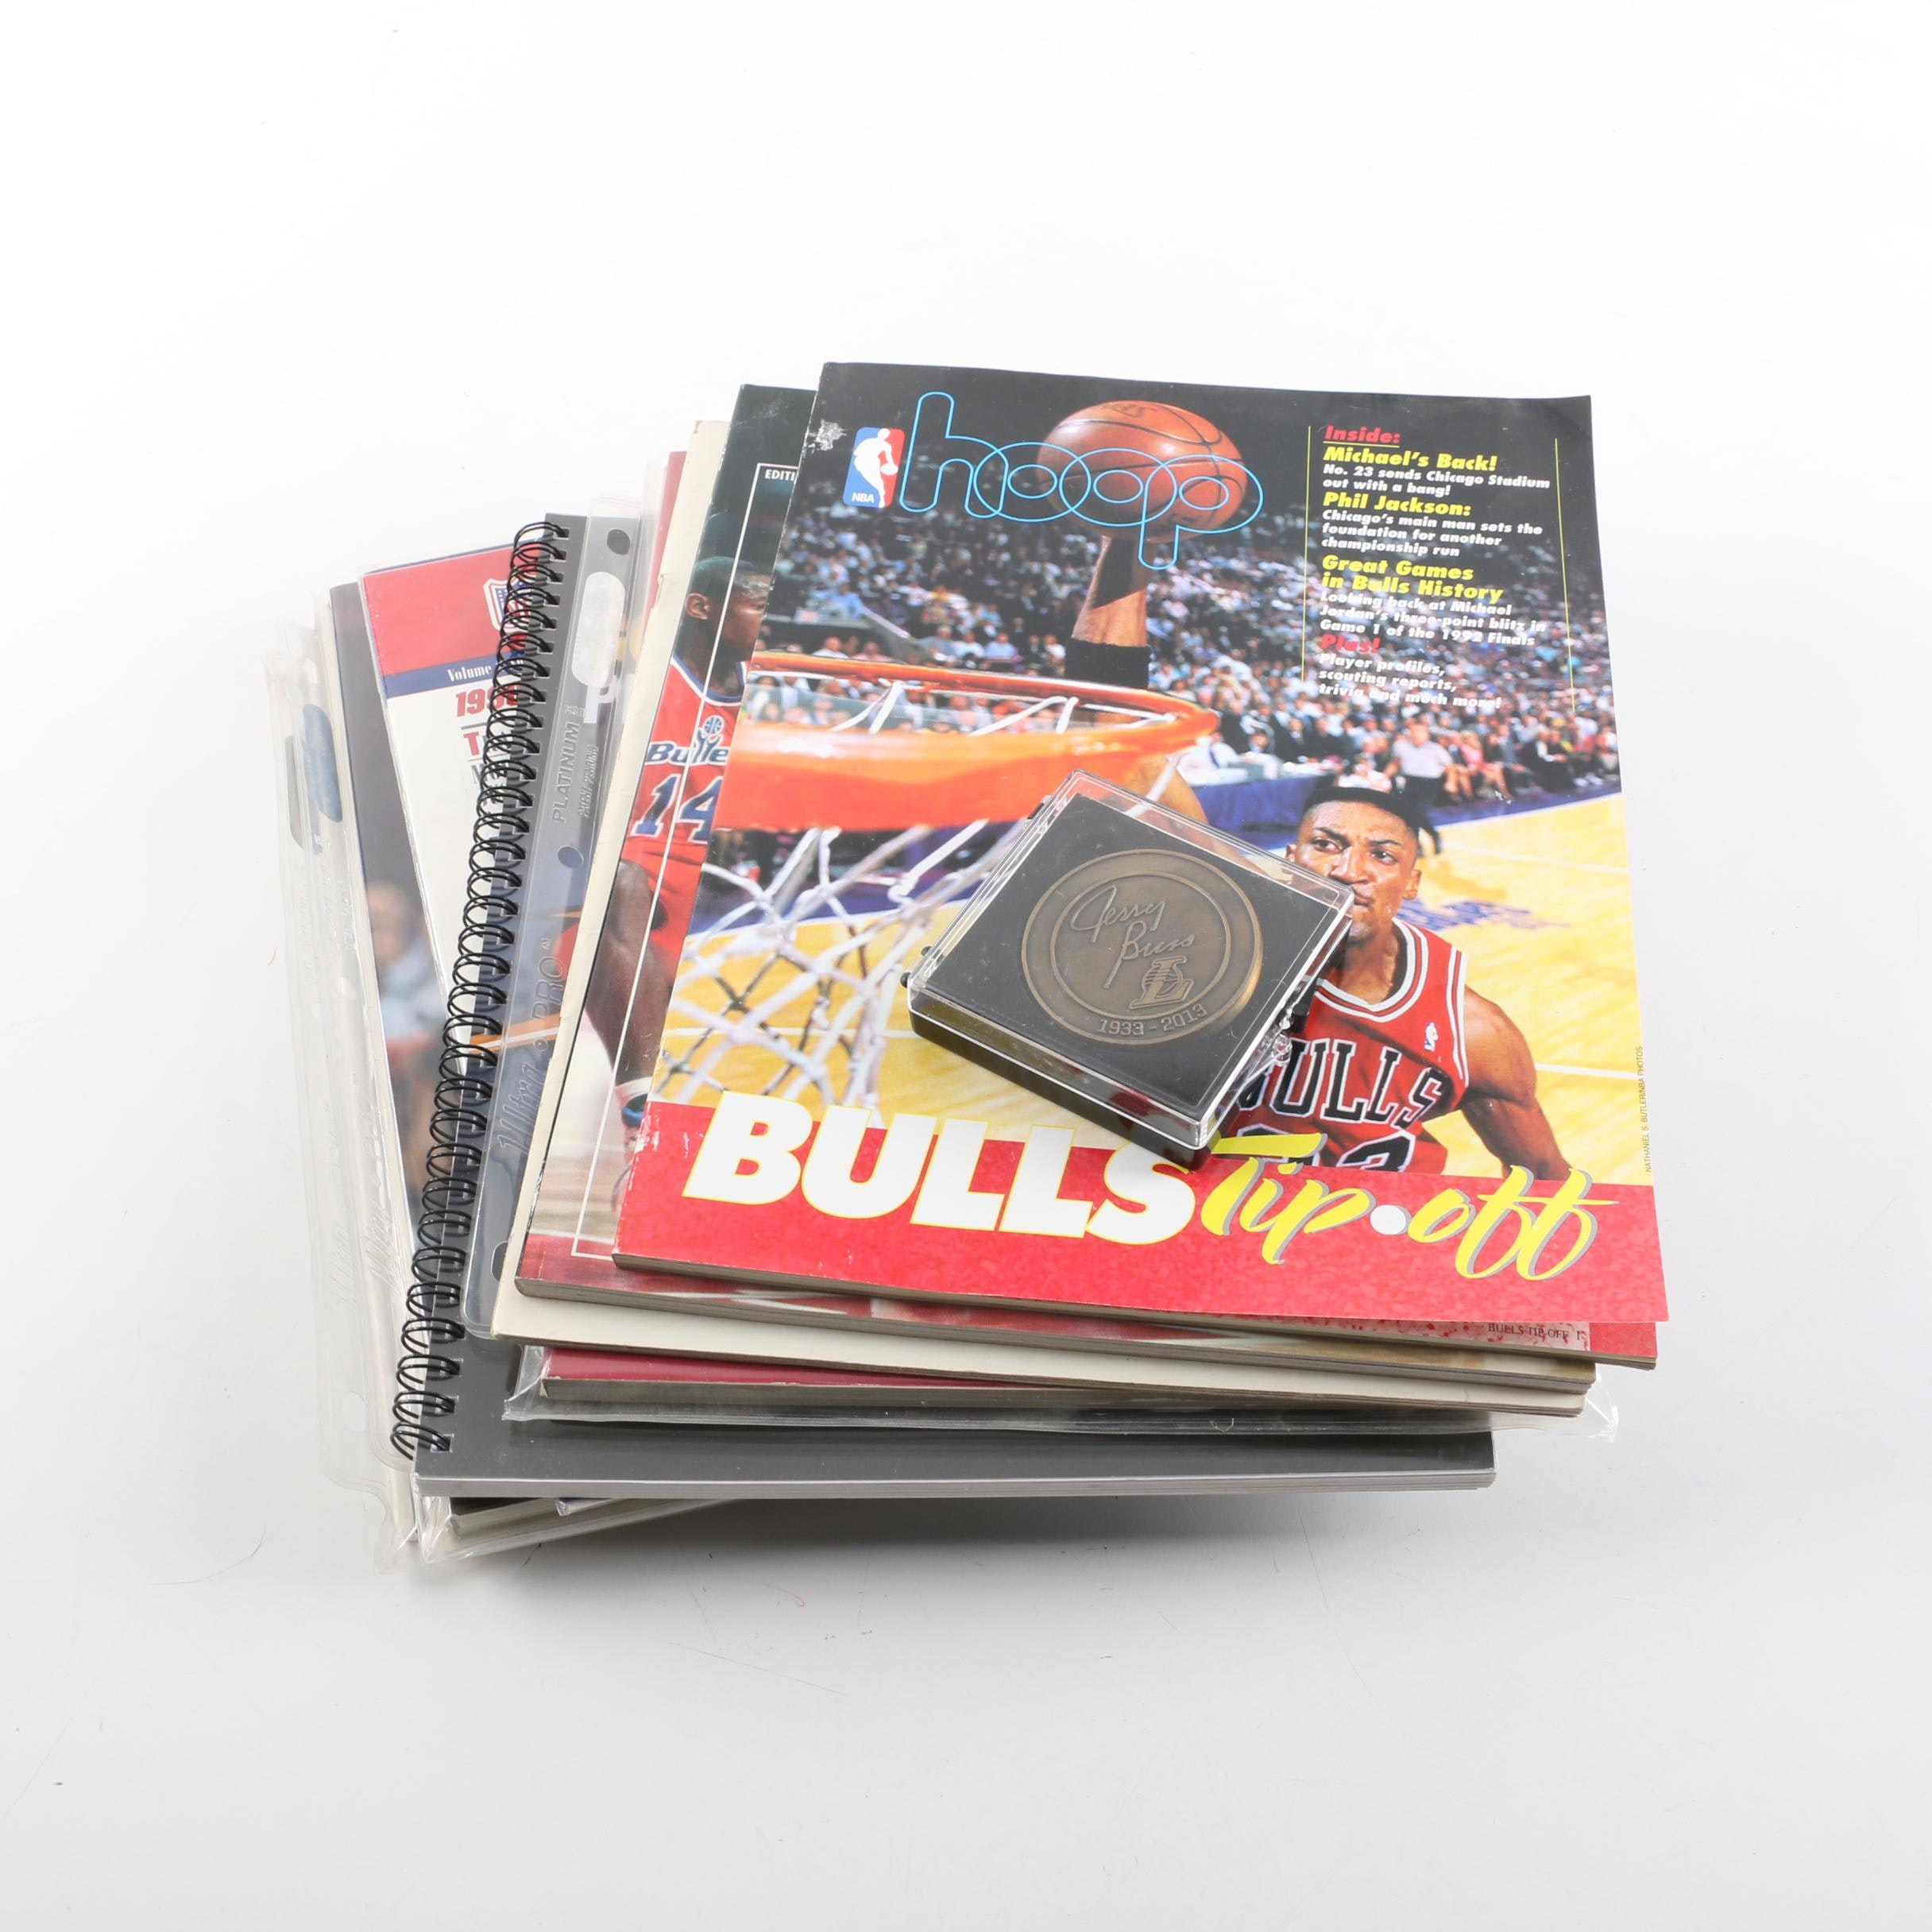 Basketball Association Magazines and Commemorative Jerry Buss Coin